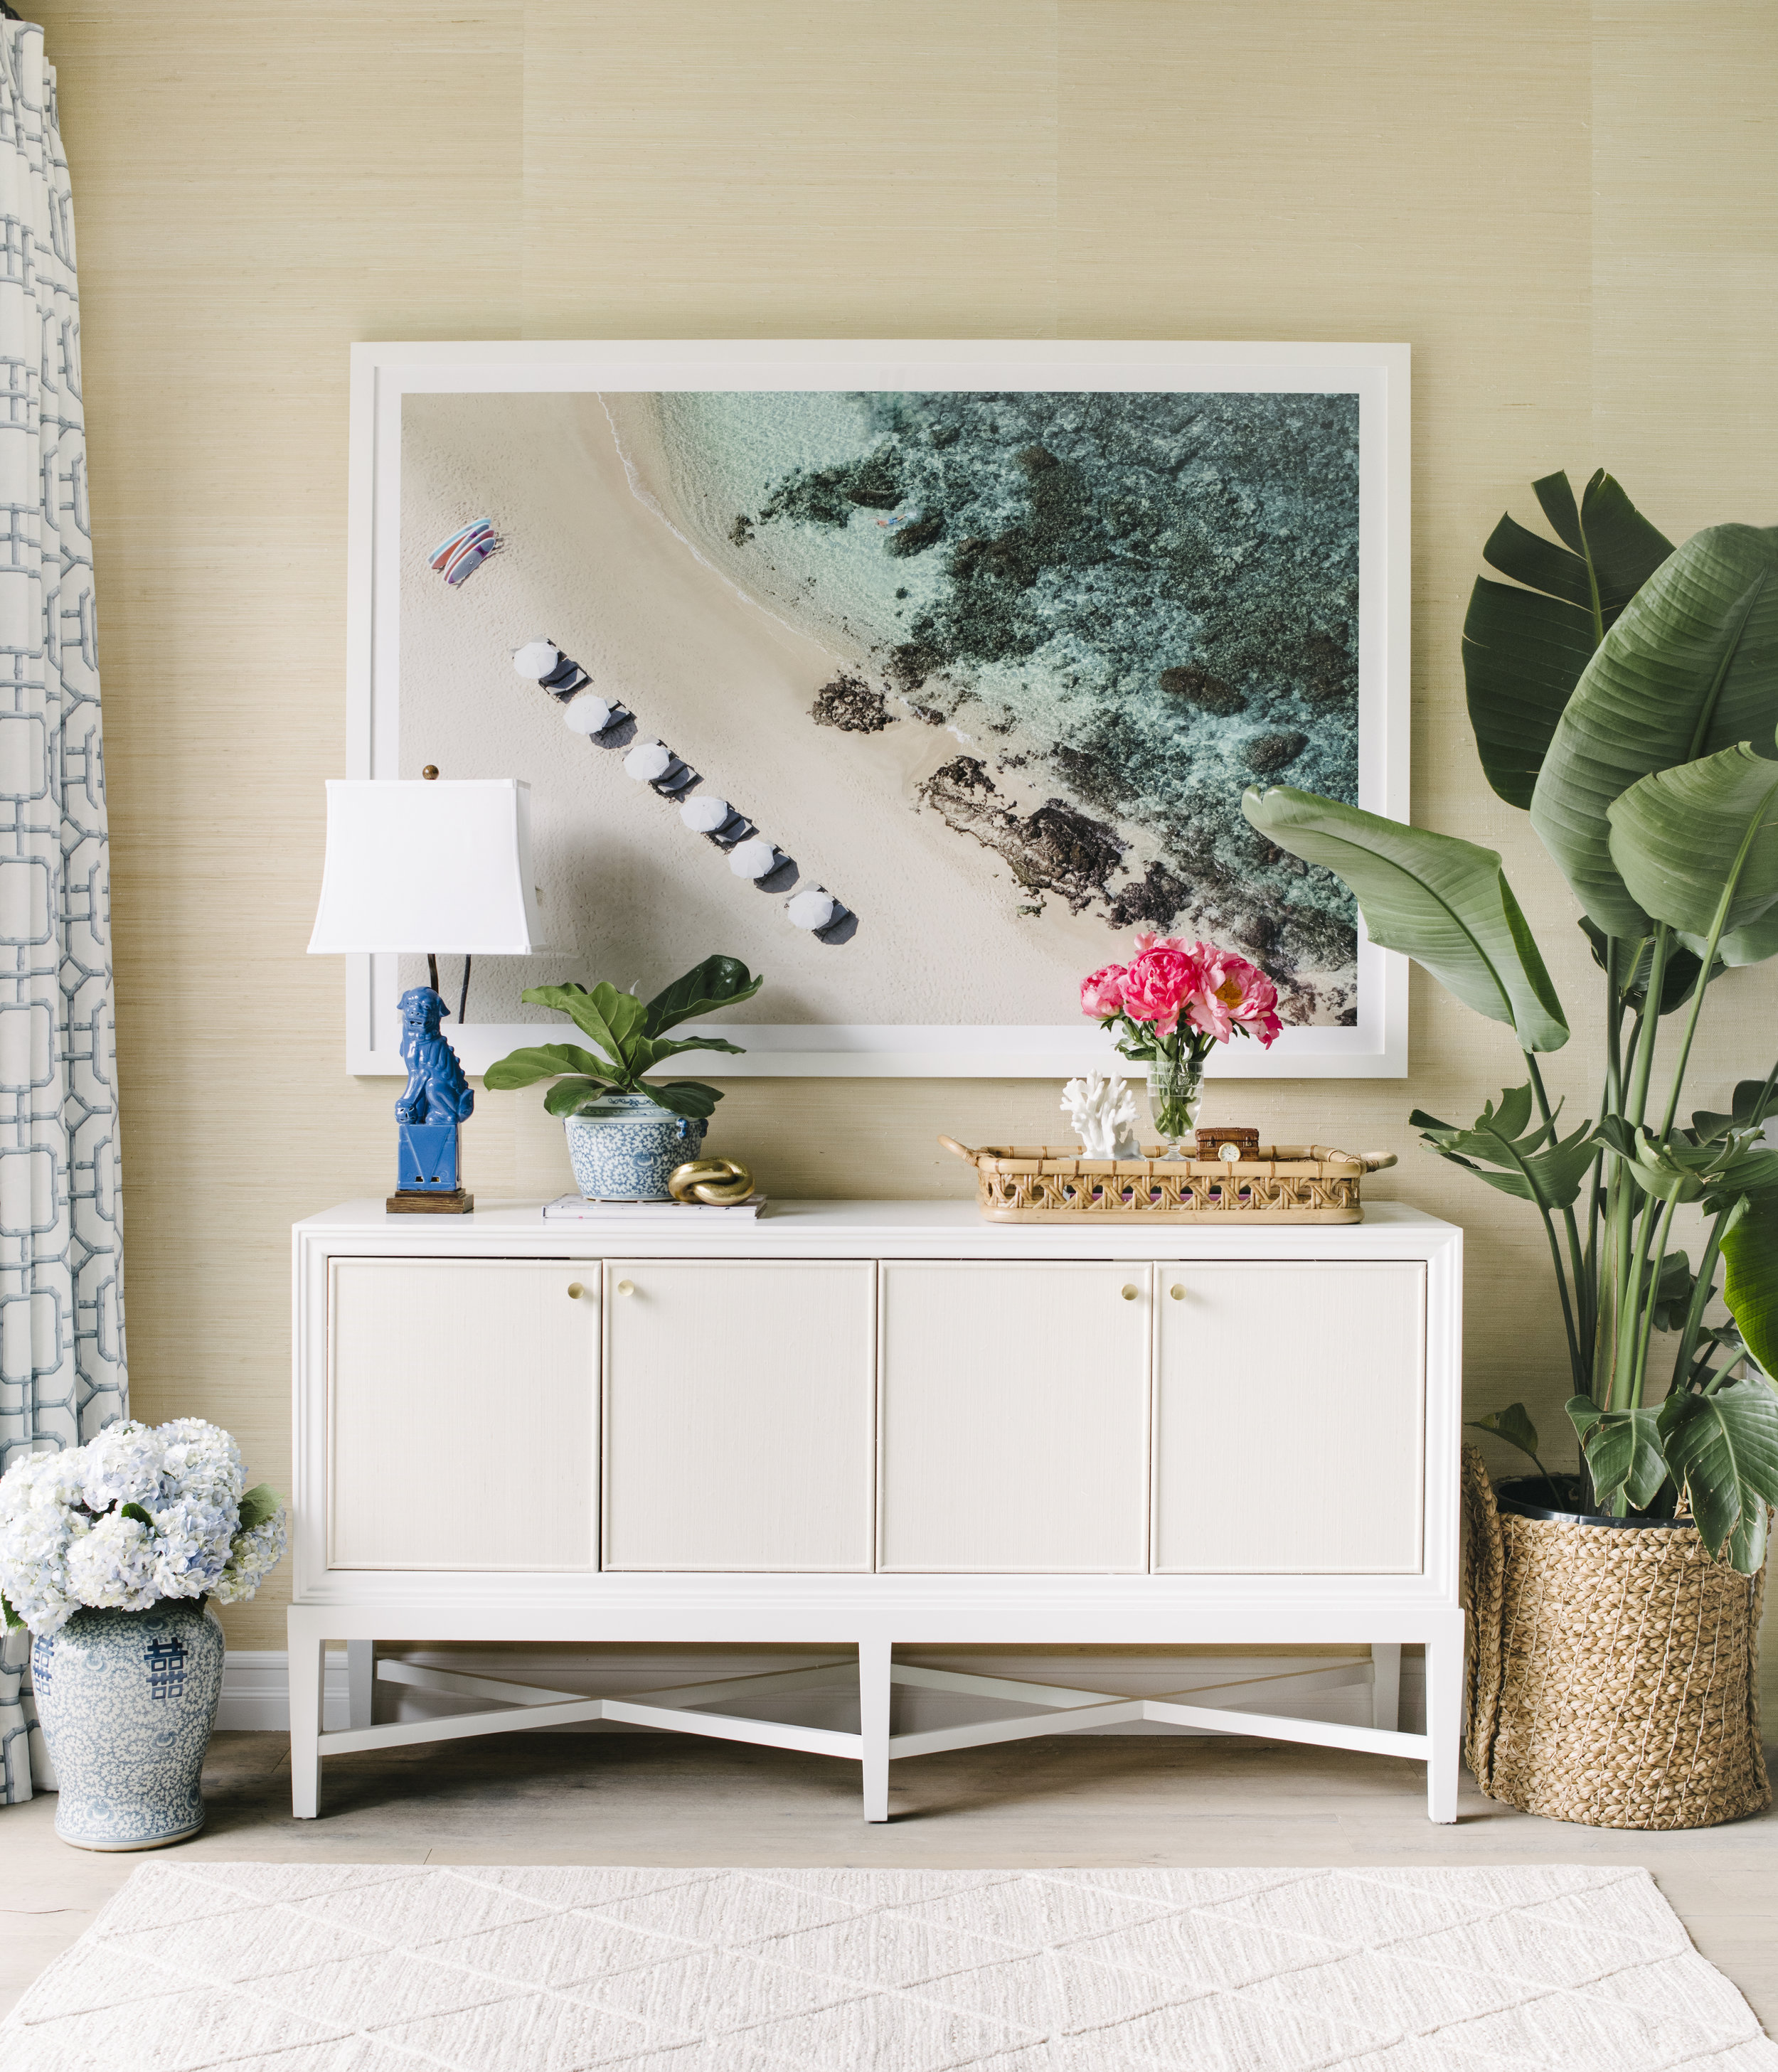 credenza - styled out.jpg